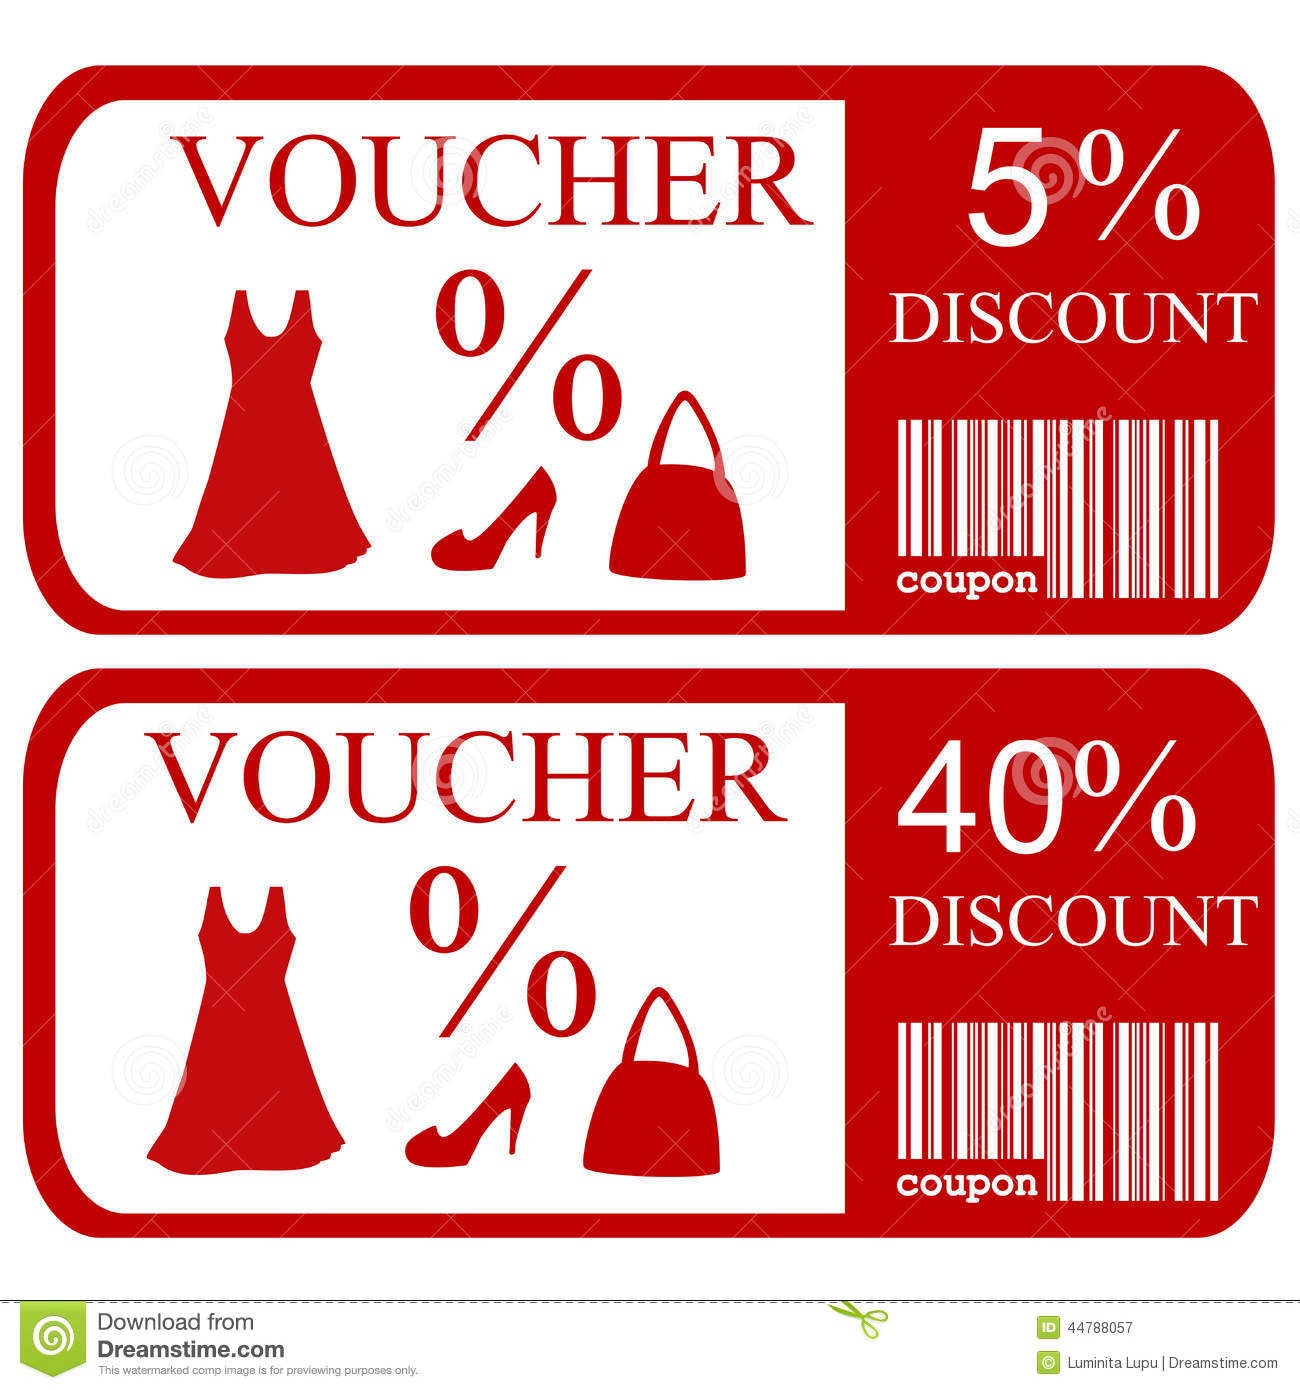 5 And 40 Discount Vouchers Stock Vector Image 44788057